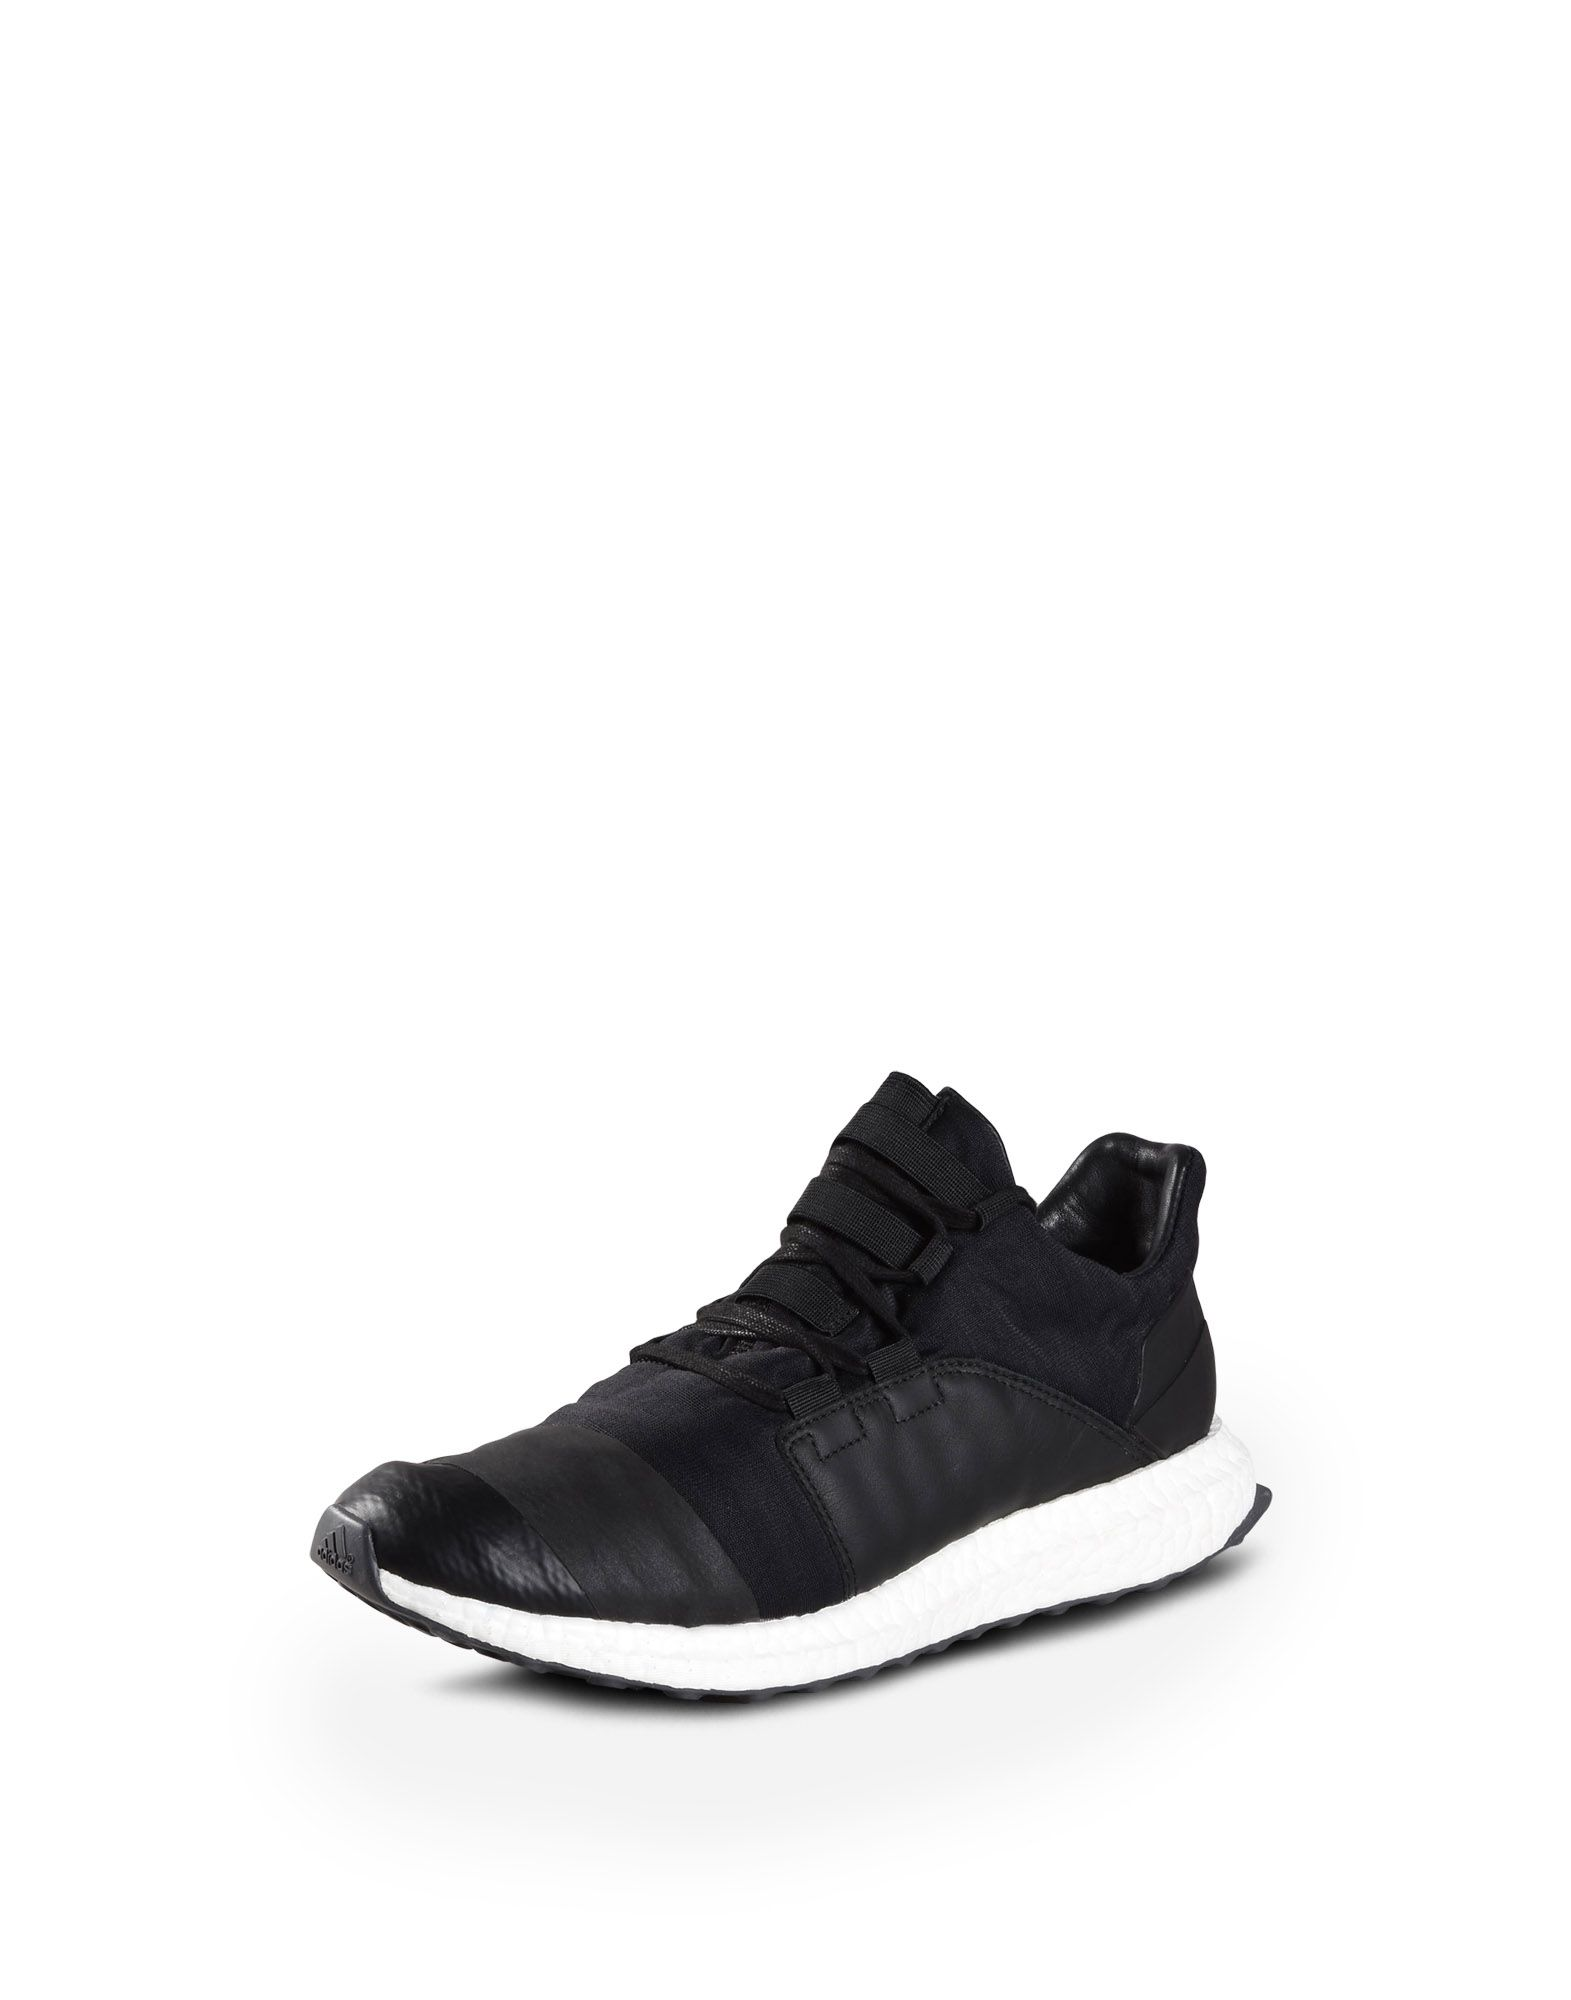 ... Y-3 KOZOKO LOW Shoes man Y-3 adidas ...